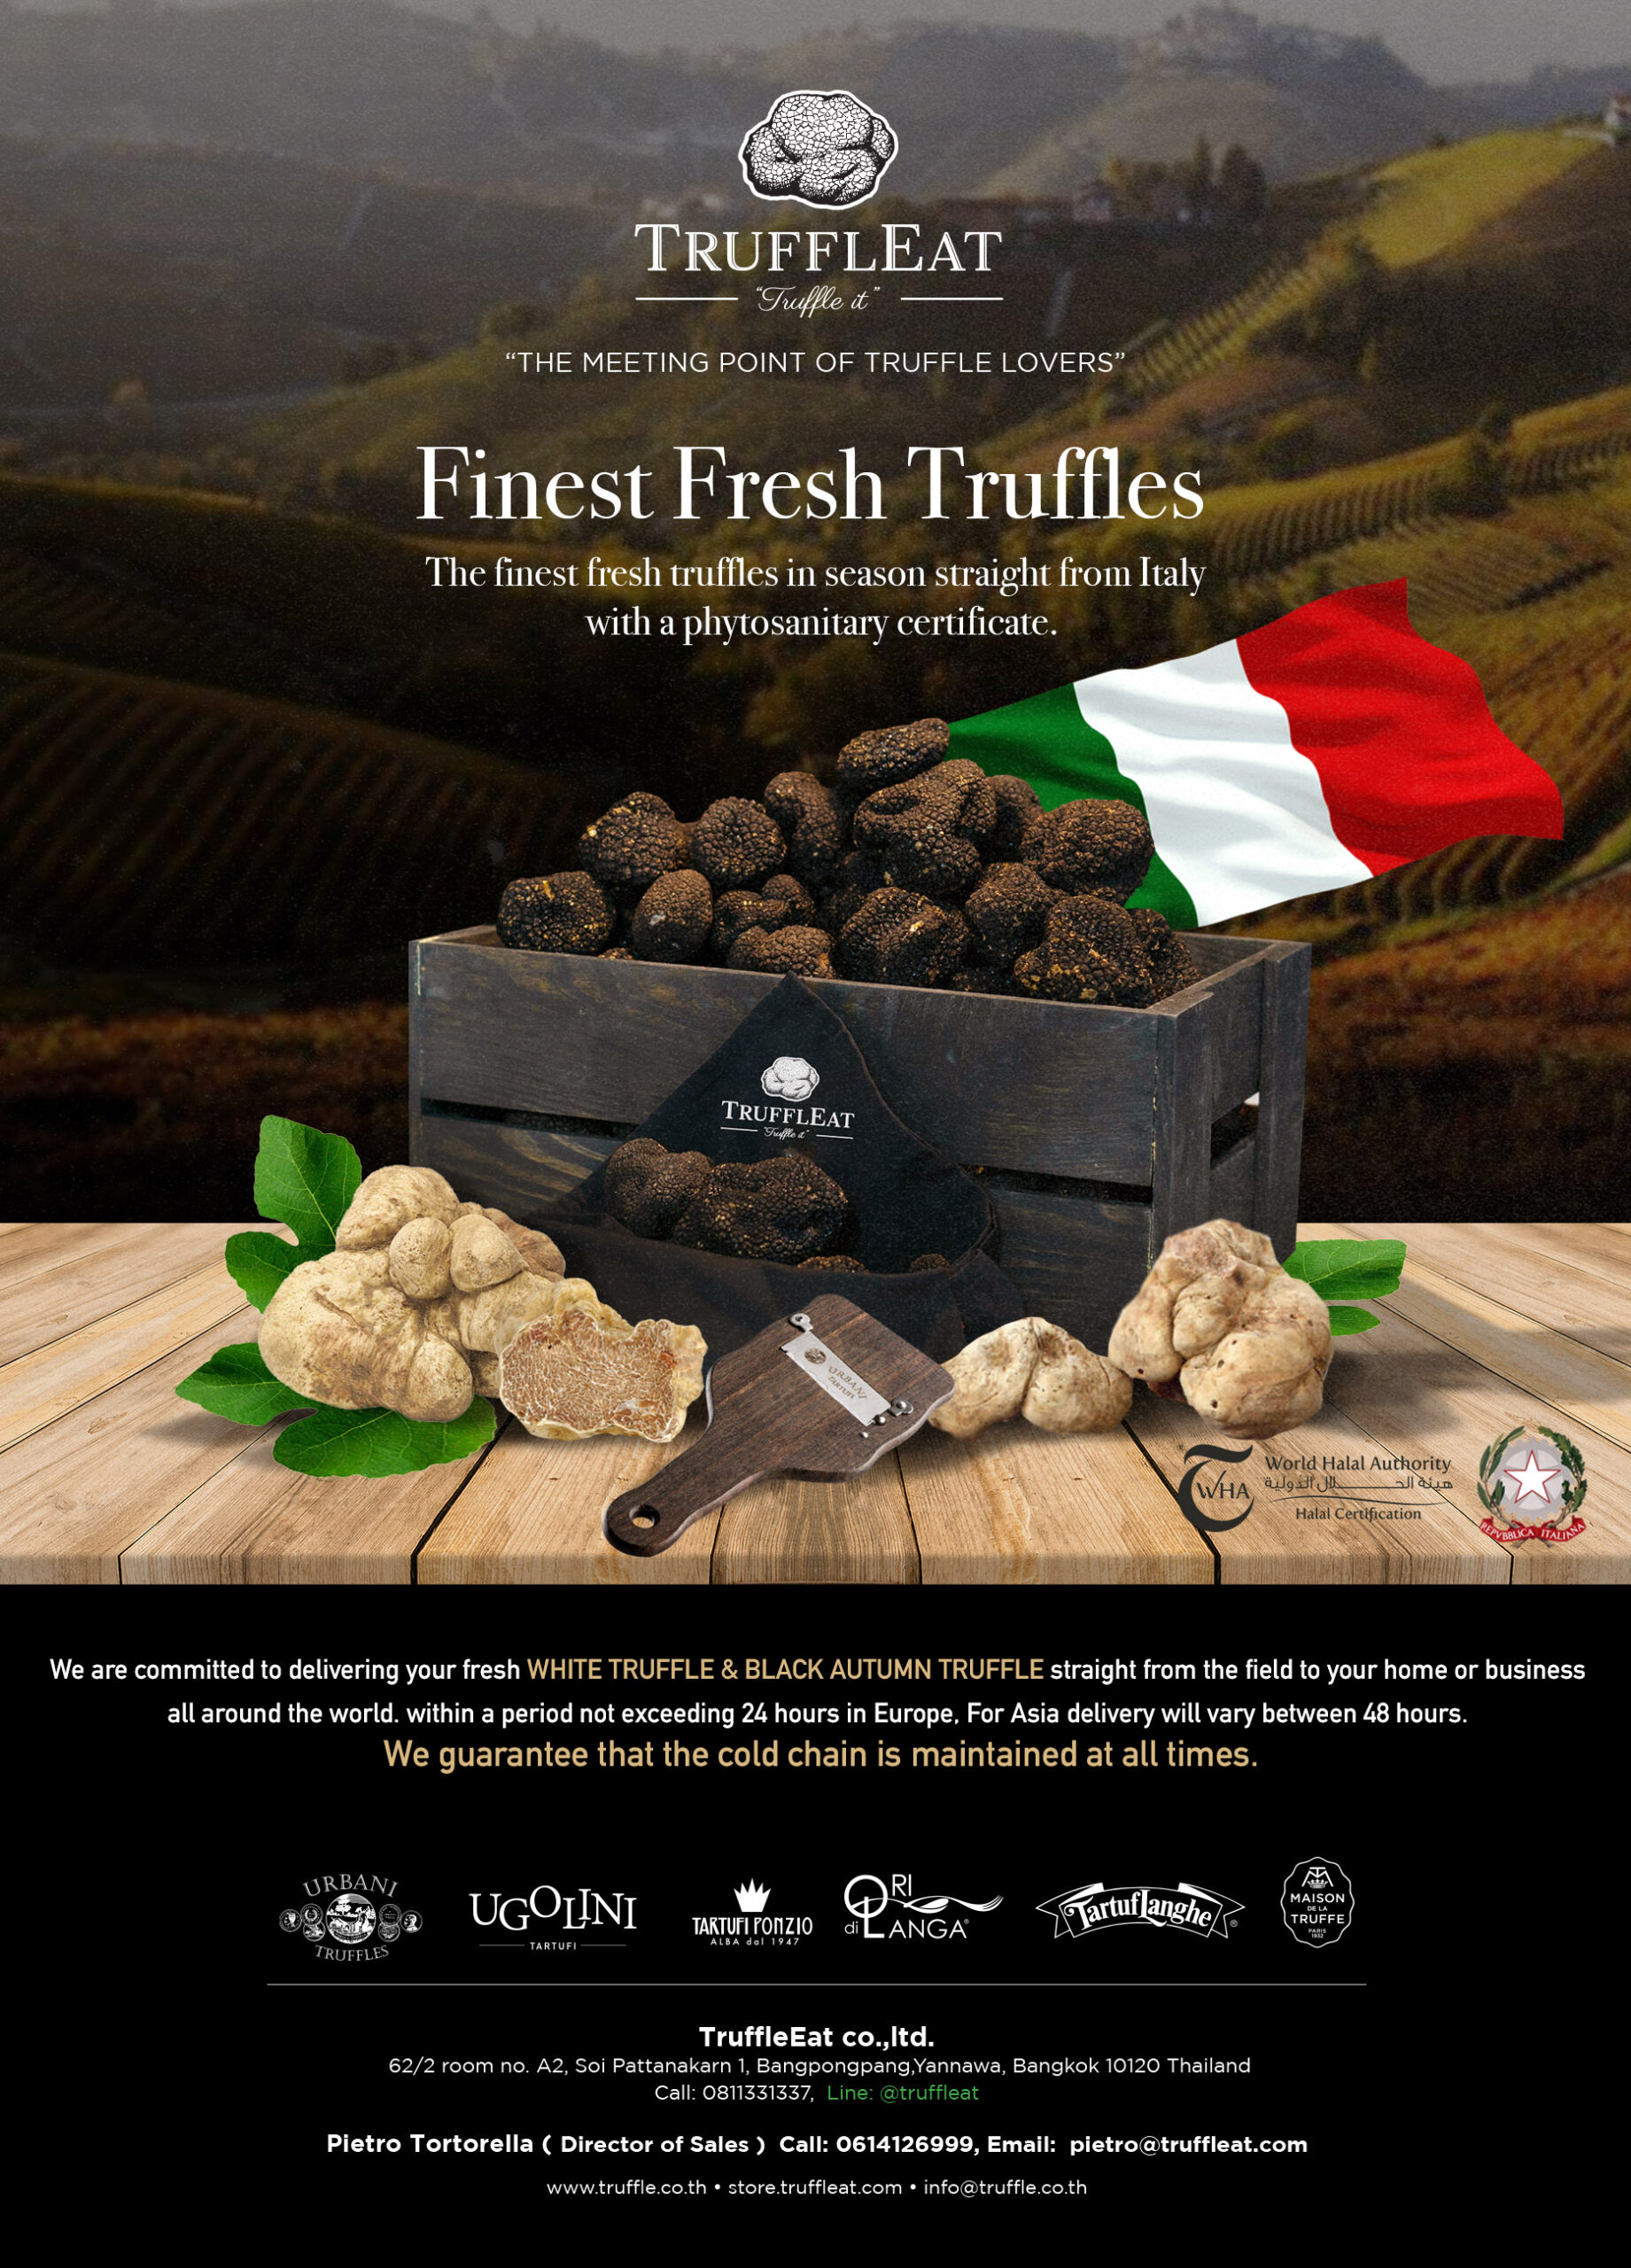 truffleat-white-truffle-&-black-autumn-truffle-season-ready-to-delivery-all-around-the-world,-order-with-us-today.